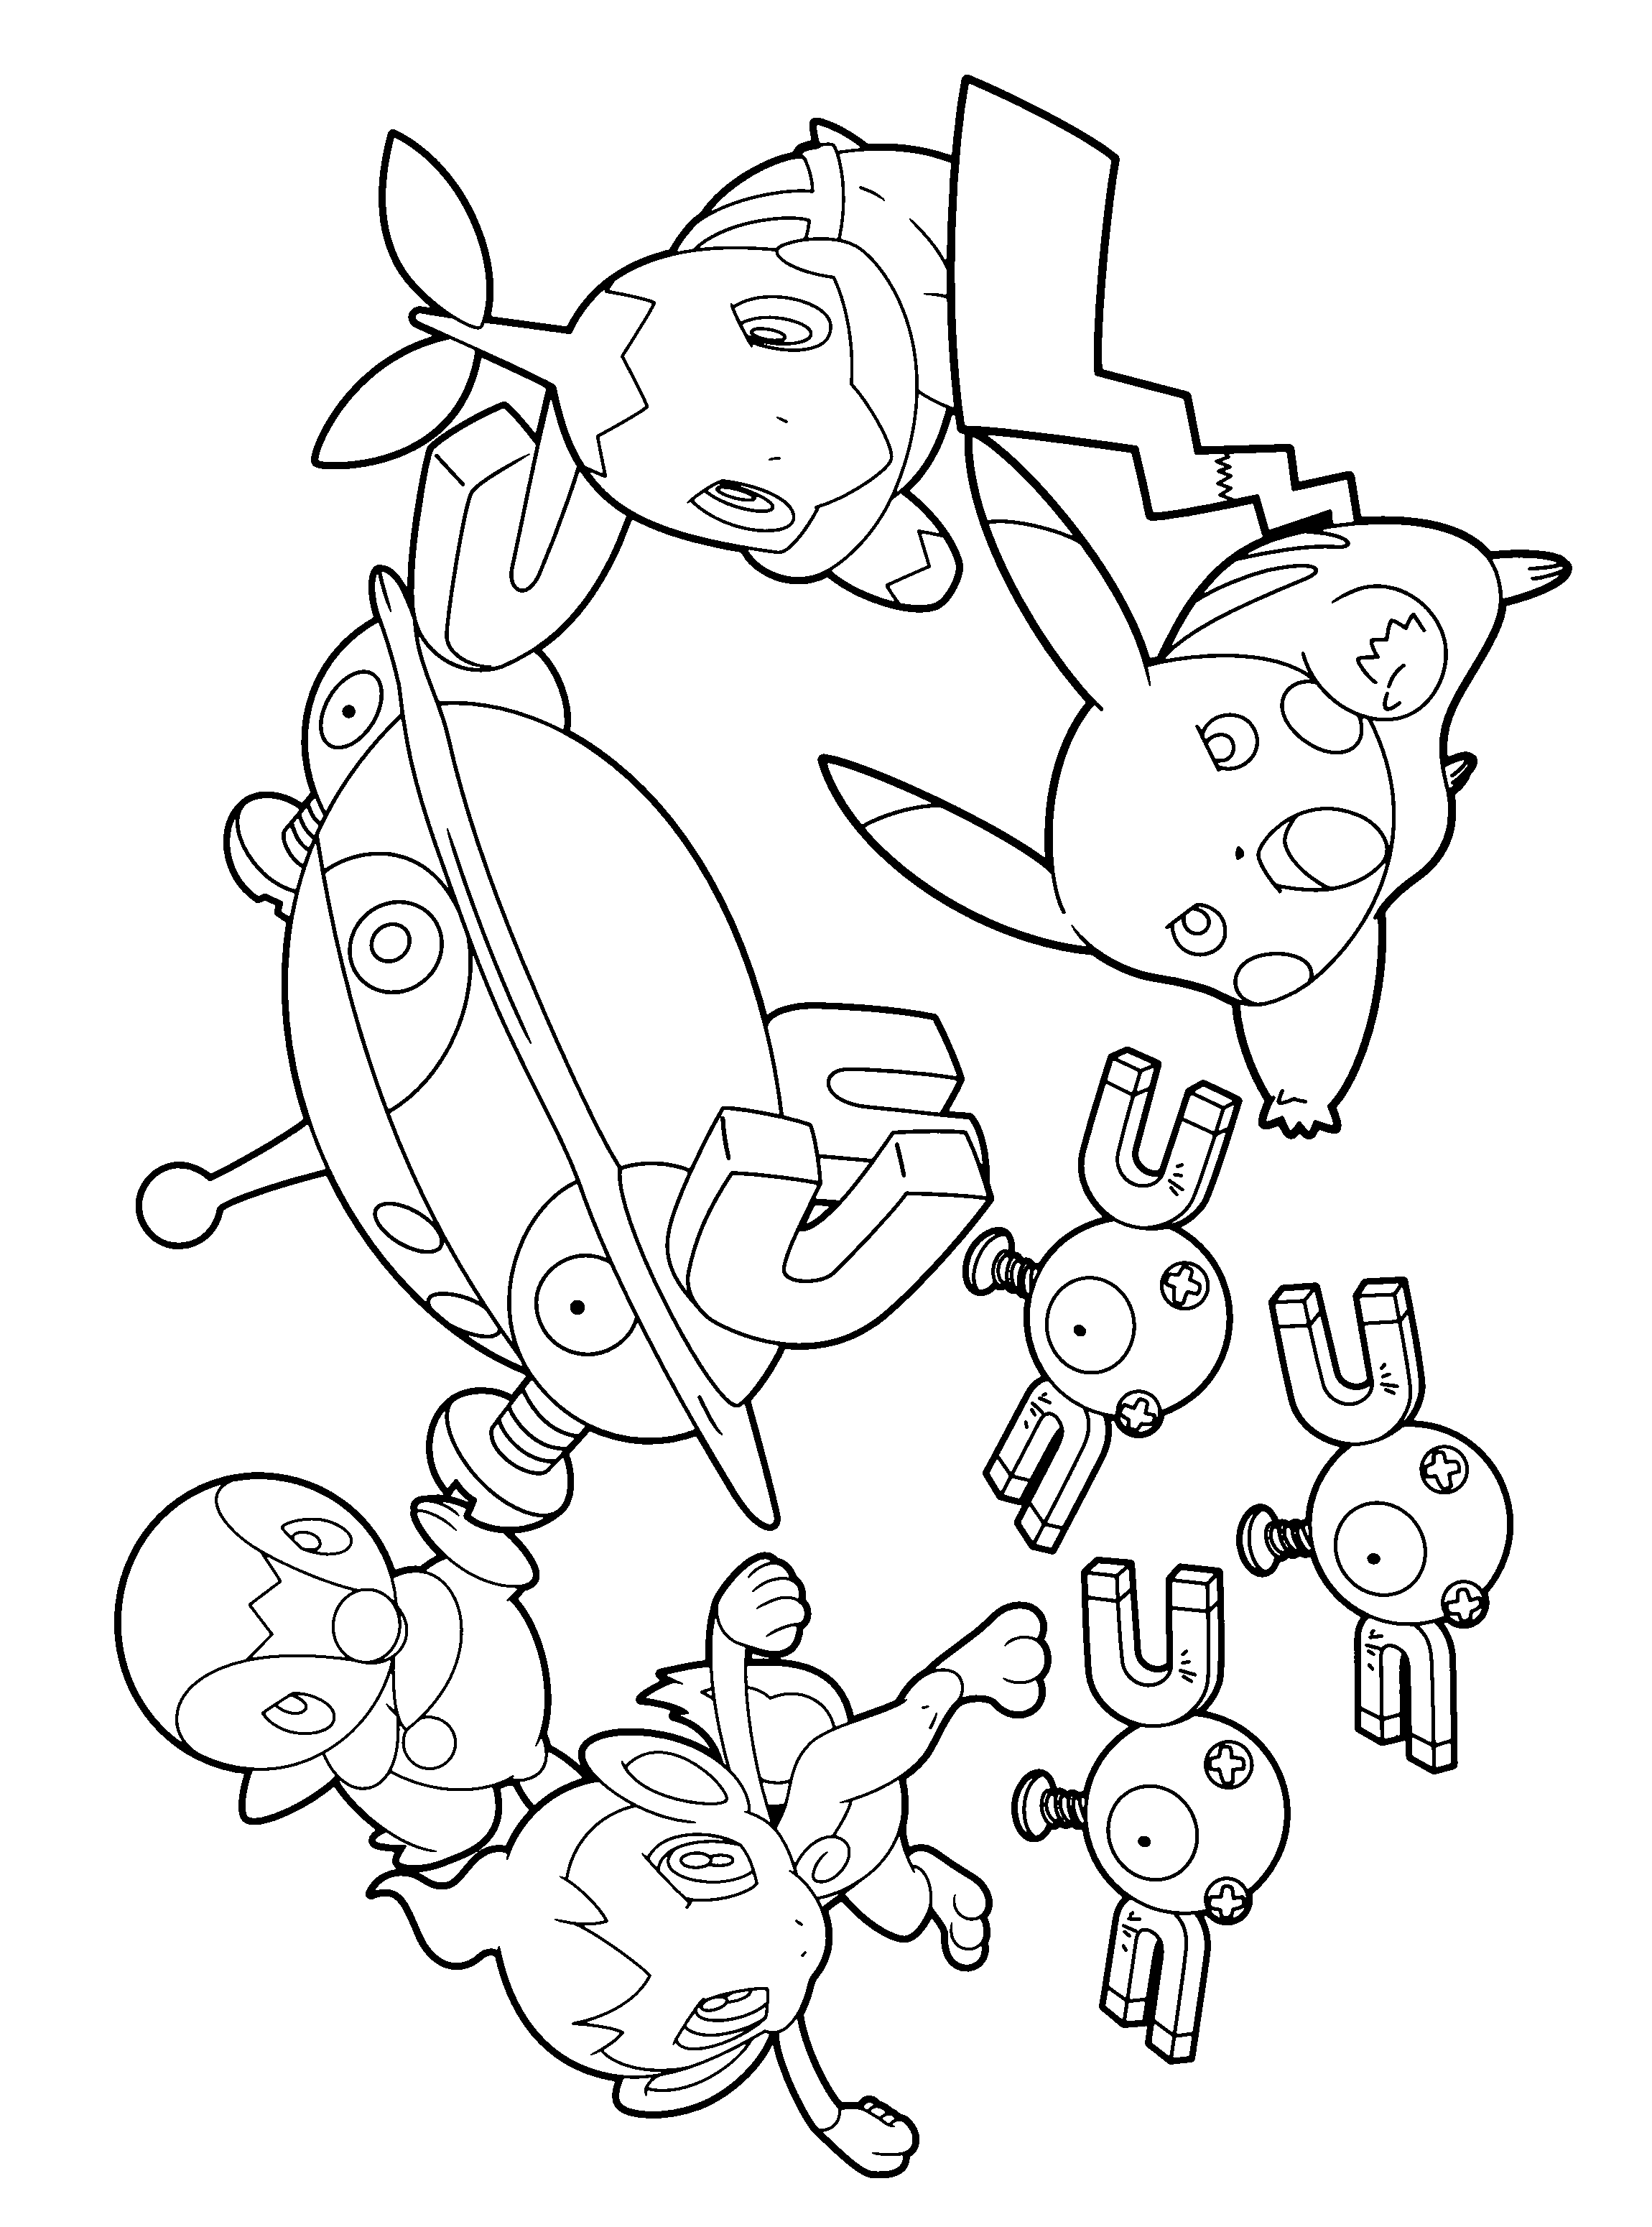 pakemon diamond pearl coloring pages - photo#18